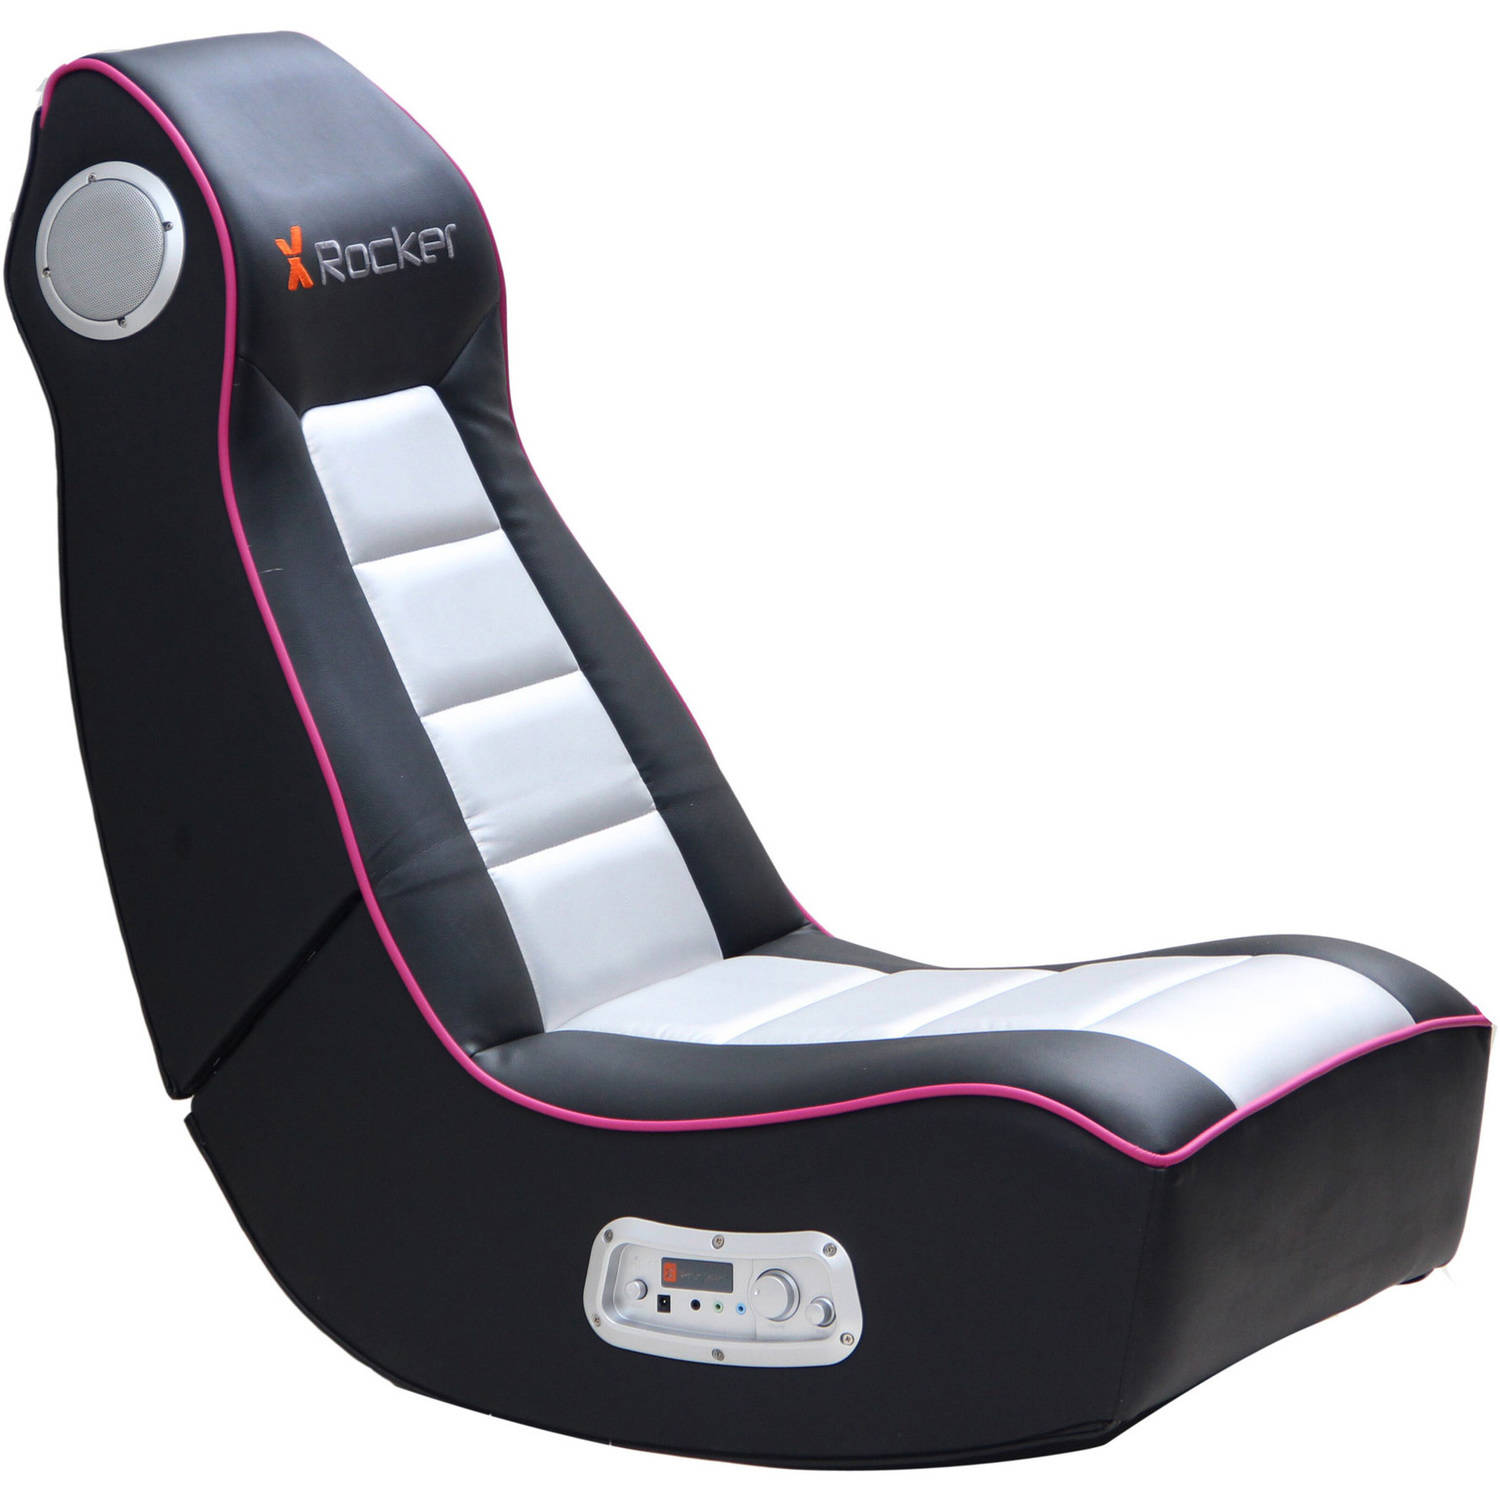 x rocker 2 1 wired audio gaming chair black pink ebay. Black Bedroom Furniture Sets. Home Design Ideas